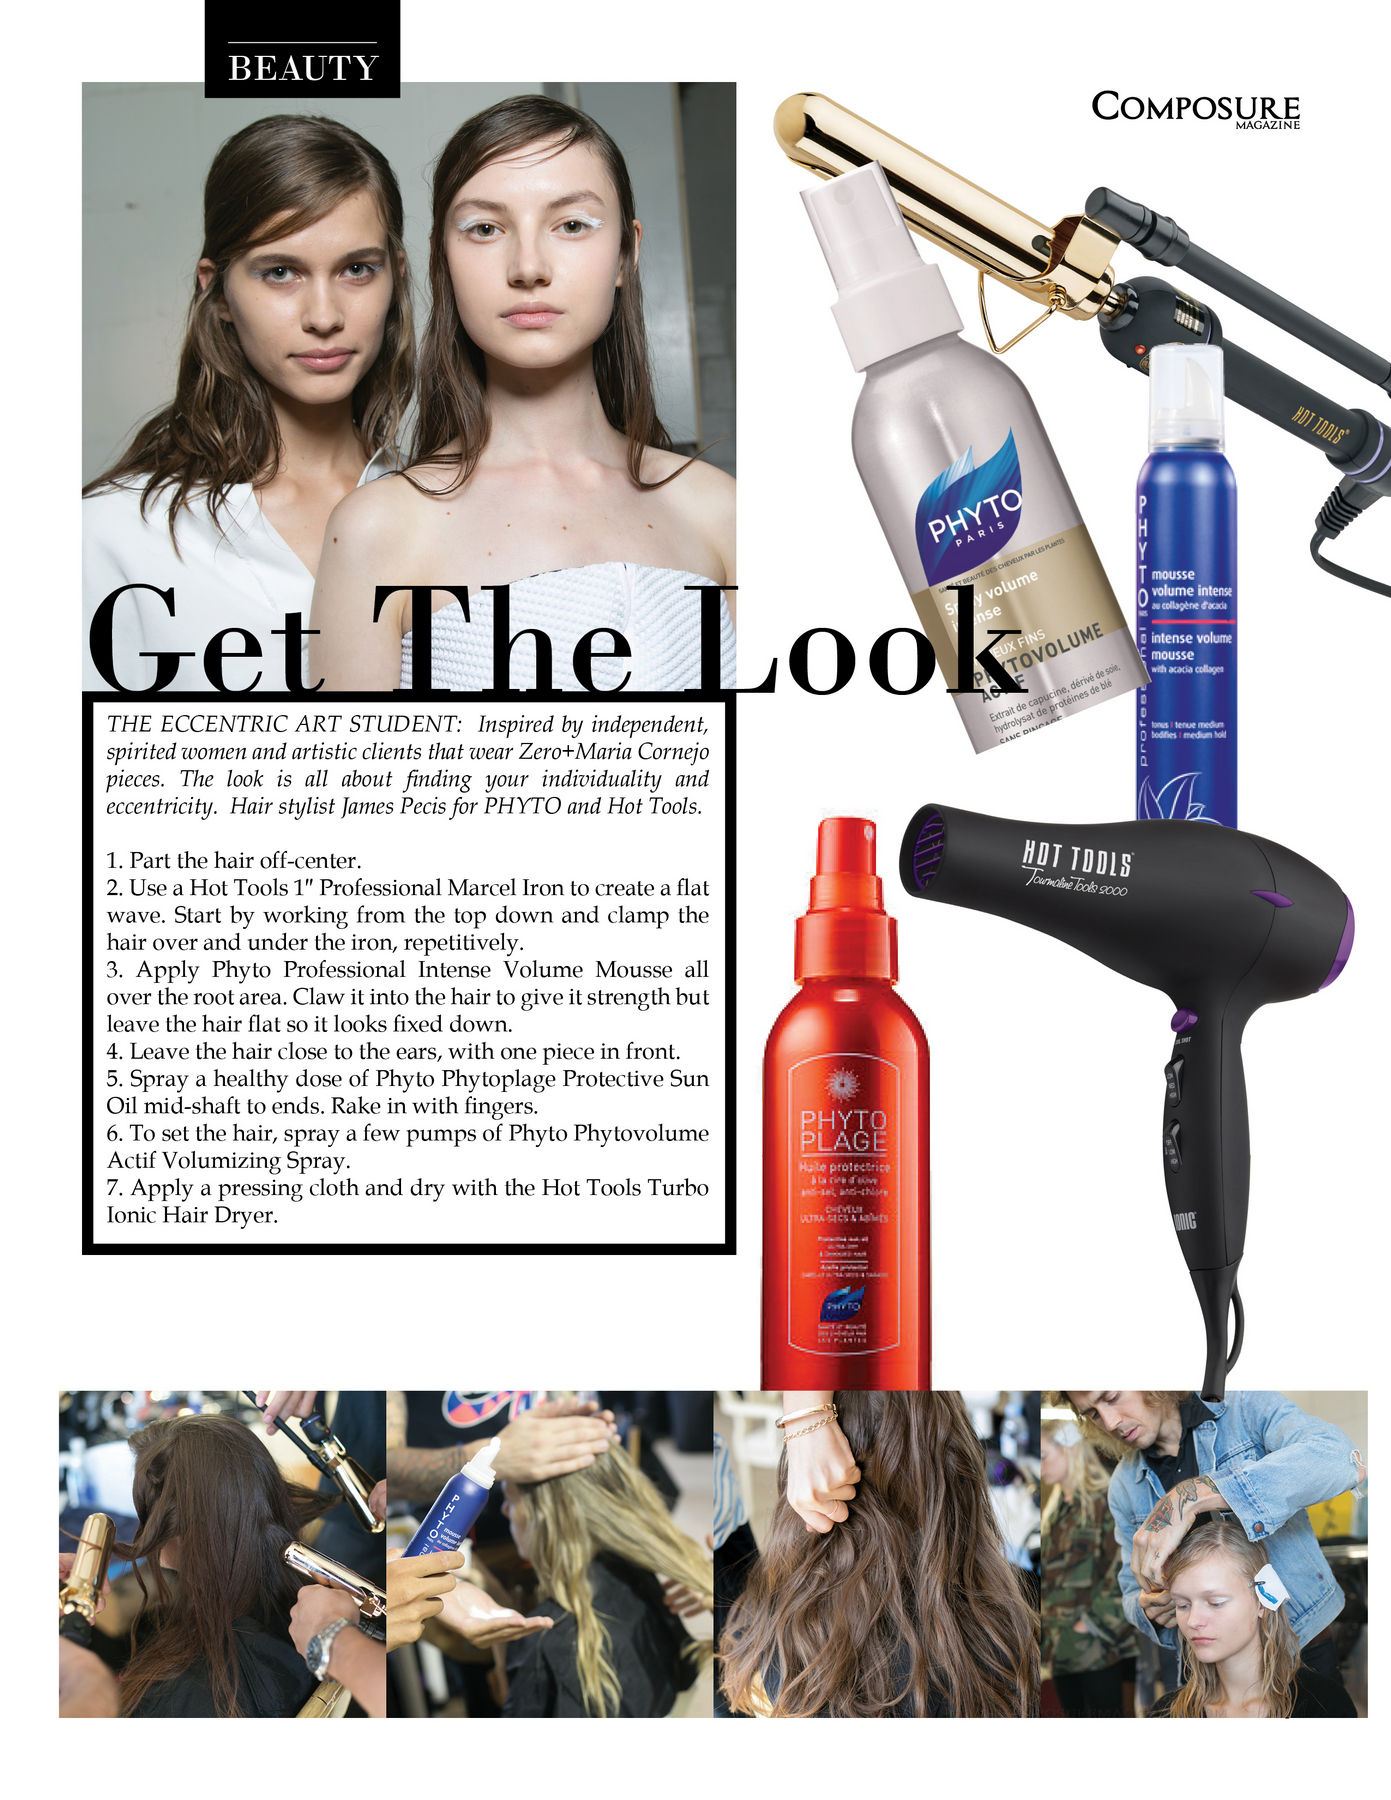 Get the look: Zero+Maria Cornejo pieces